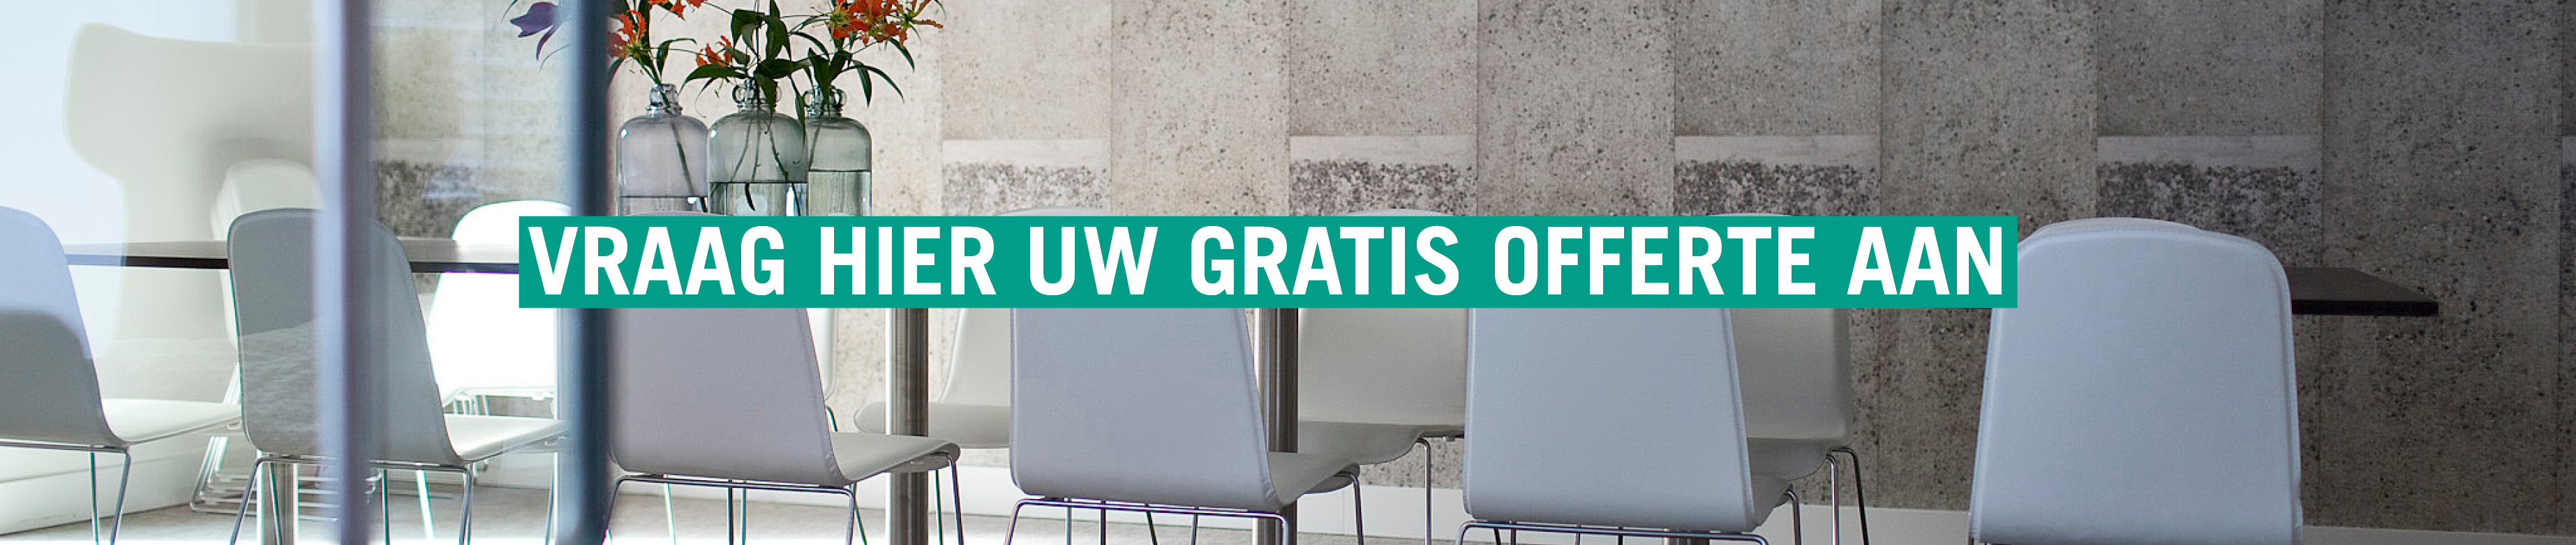 Gratis offerte Meet in Mechelen